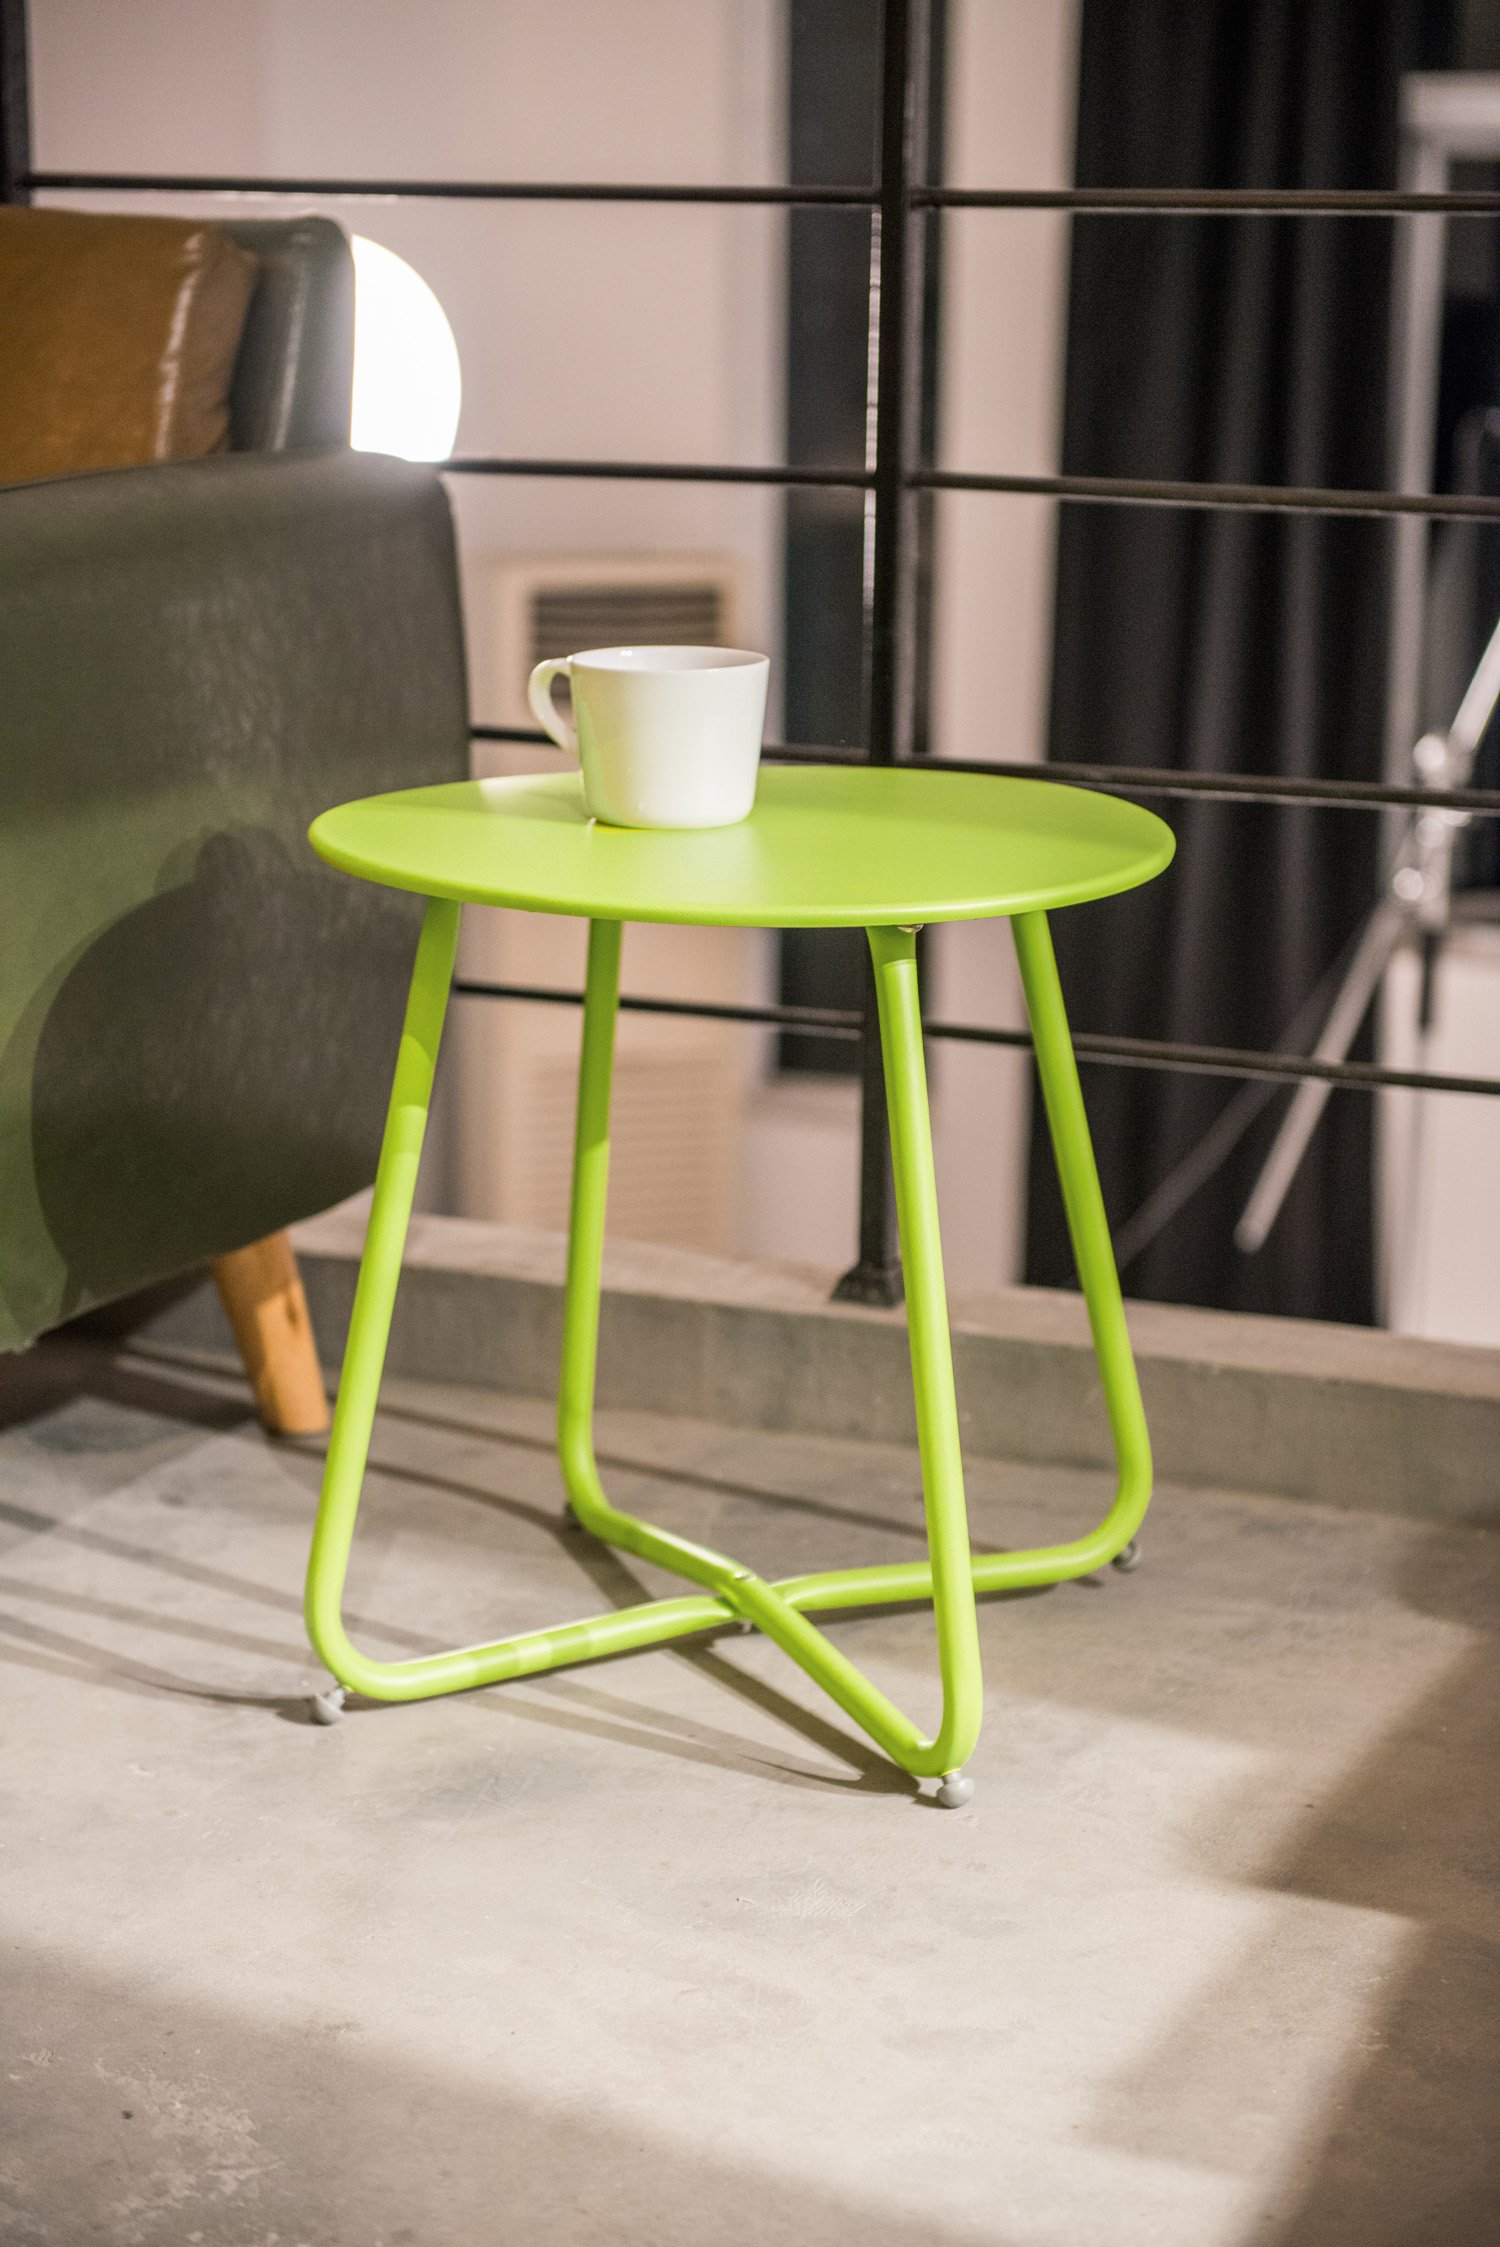 Grand Live Steel Small Round Bistro Side Table,Outdoor/Indoor Ottoman,Tray Side Table, Snack Table, Patio Coffee Table, Anti-Rusty (Green)